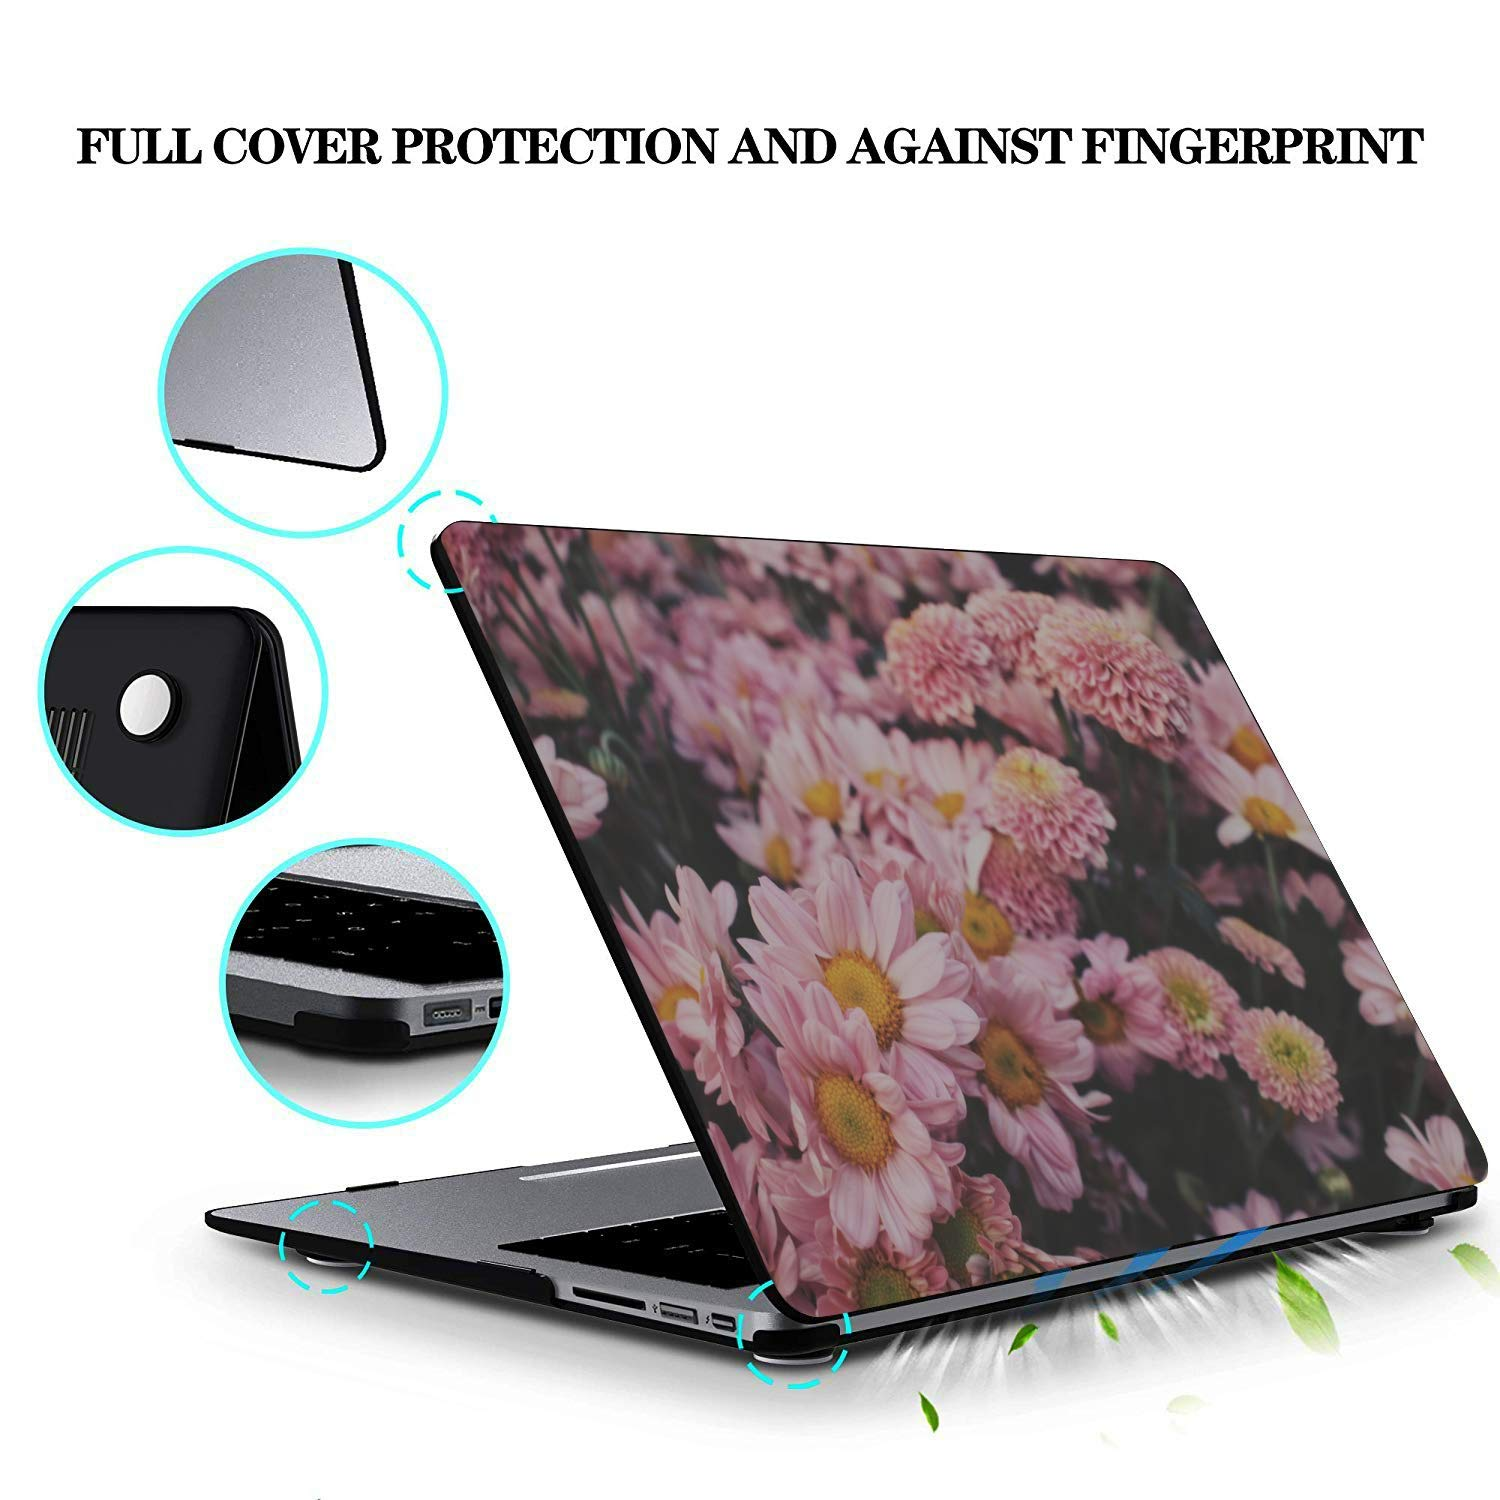 Mac 15 Inch Case Summer Small Fruit Vegetable Tomato Plastic Hard Shell Compatible Mac Air 11 Pro 13 15 MacBook Pro Accessories Protection for MacBook 2016-2019 Version